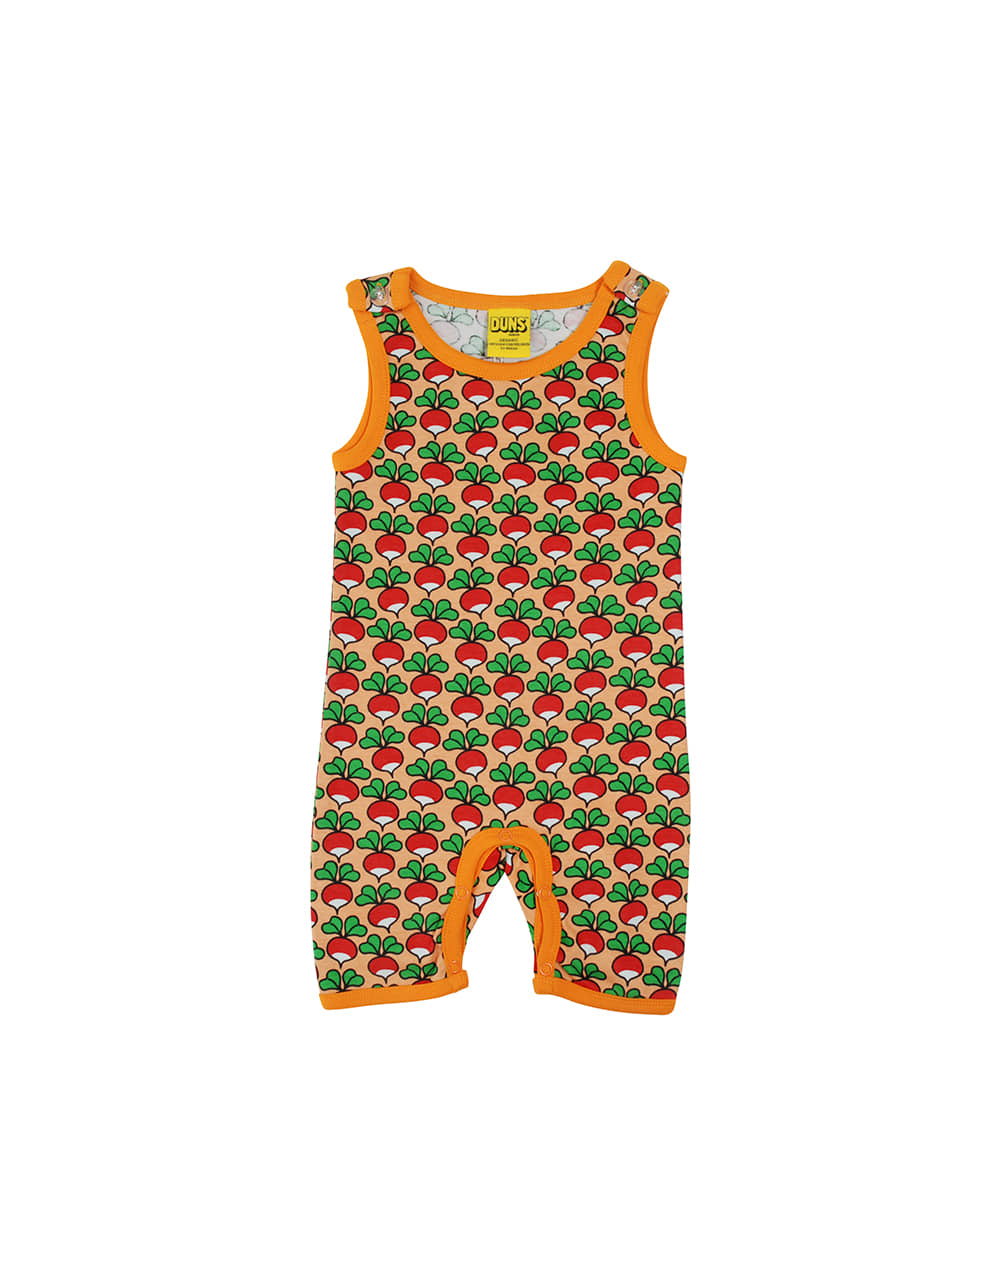 DUNS SWEDEN  Summer DUNGAREES   Radish Canteoupe